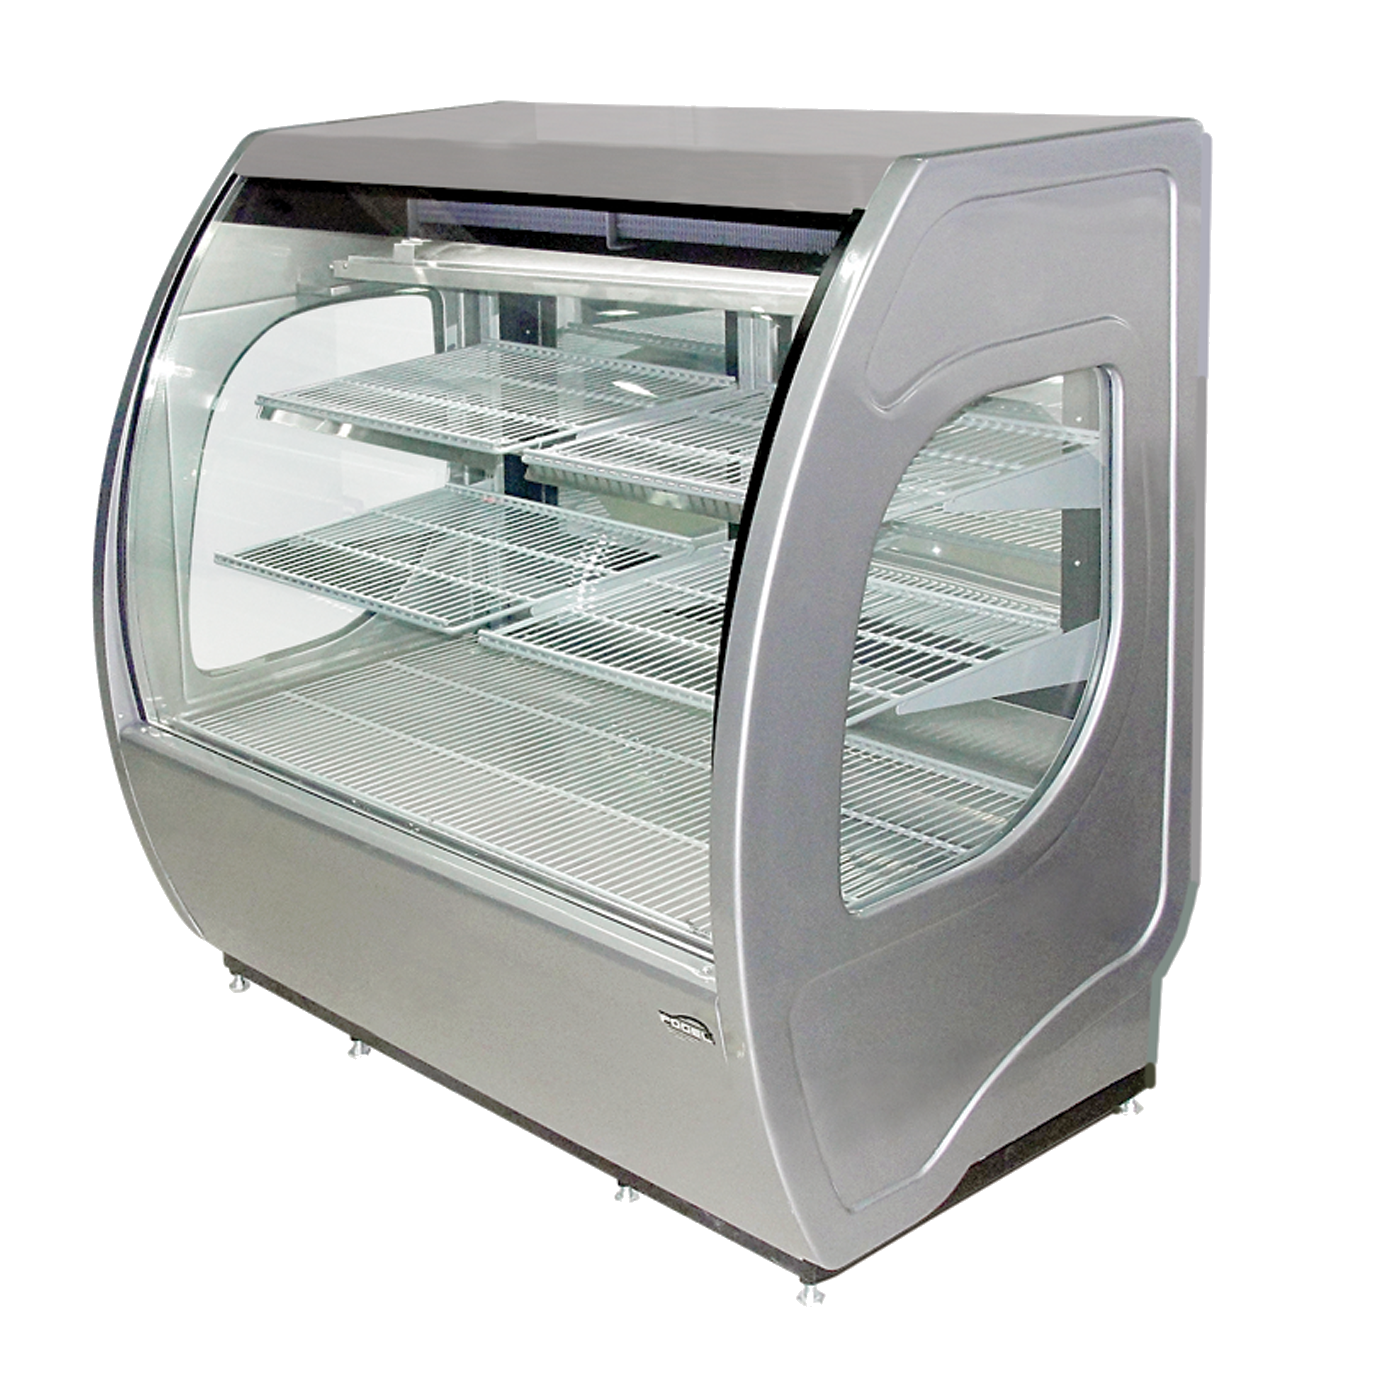 Fogel USA ELITE-4-PF-G display case, refrigerated bakery